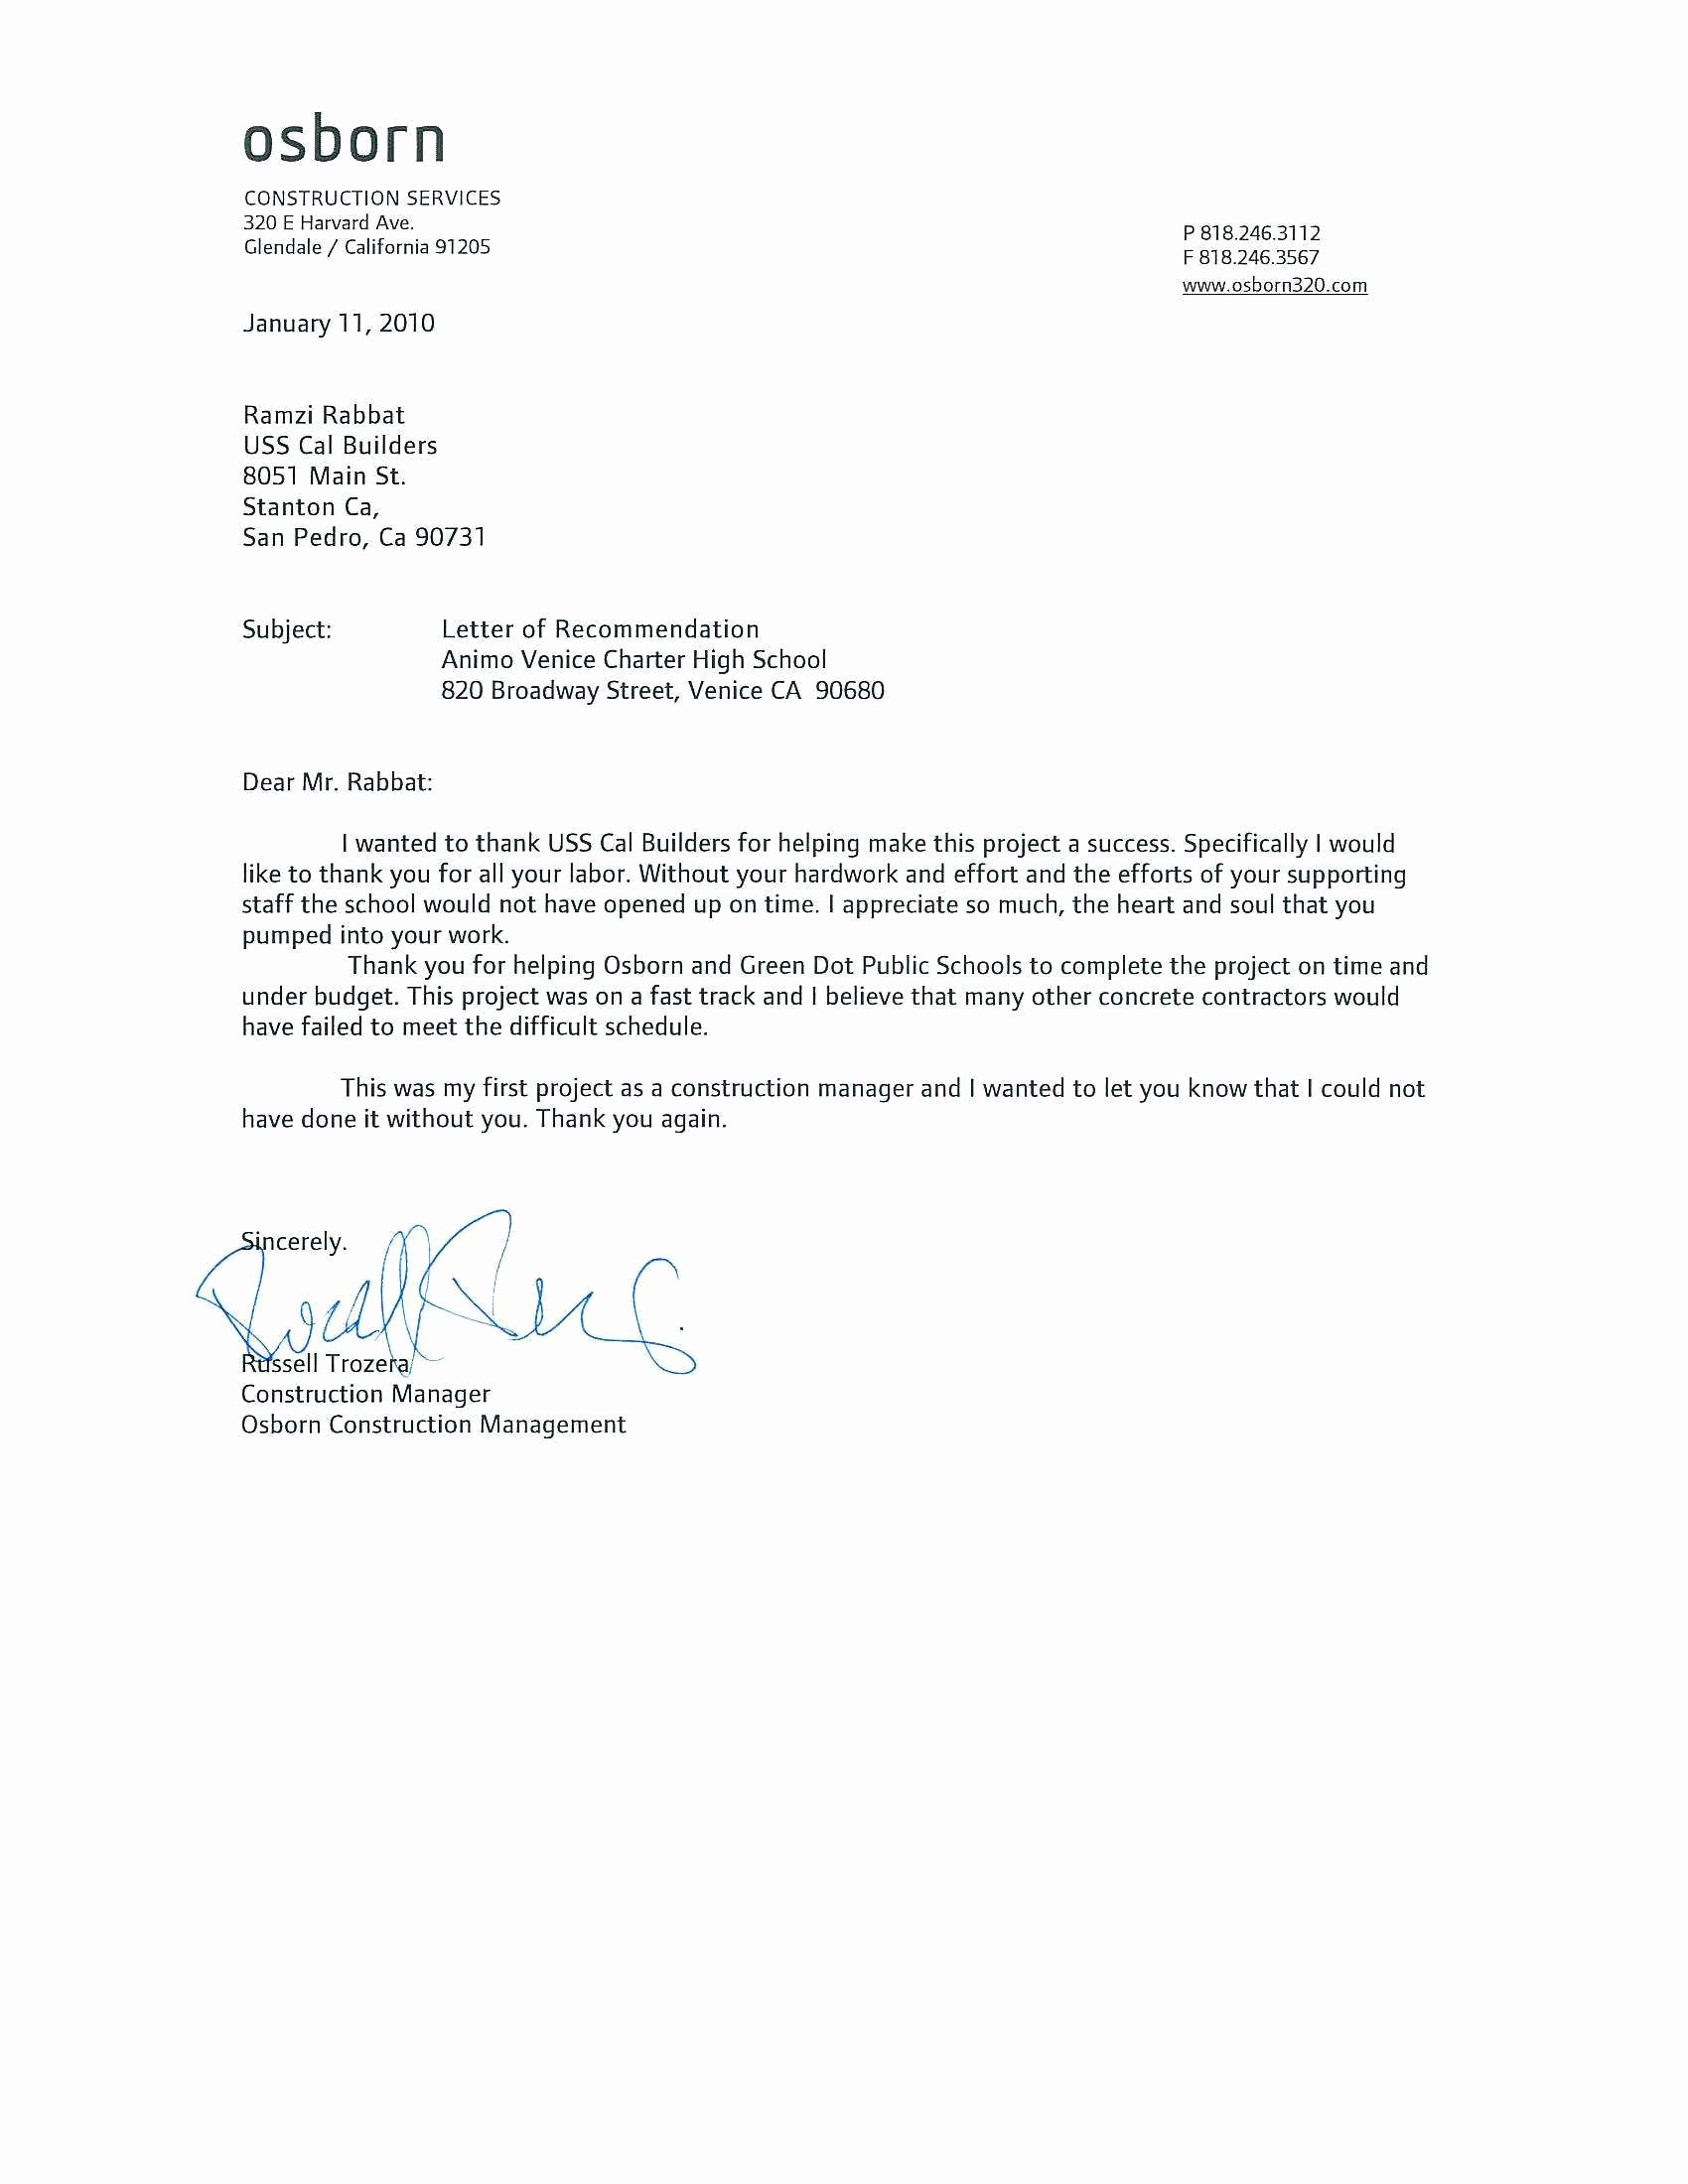 Letter Of Recommendation with Letterhead Awesome Tips for Writing A Letter Of Re Mendation